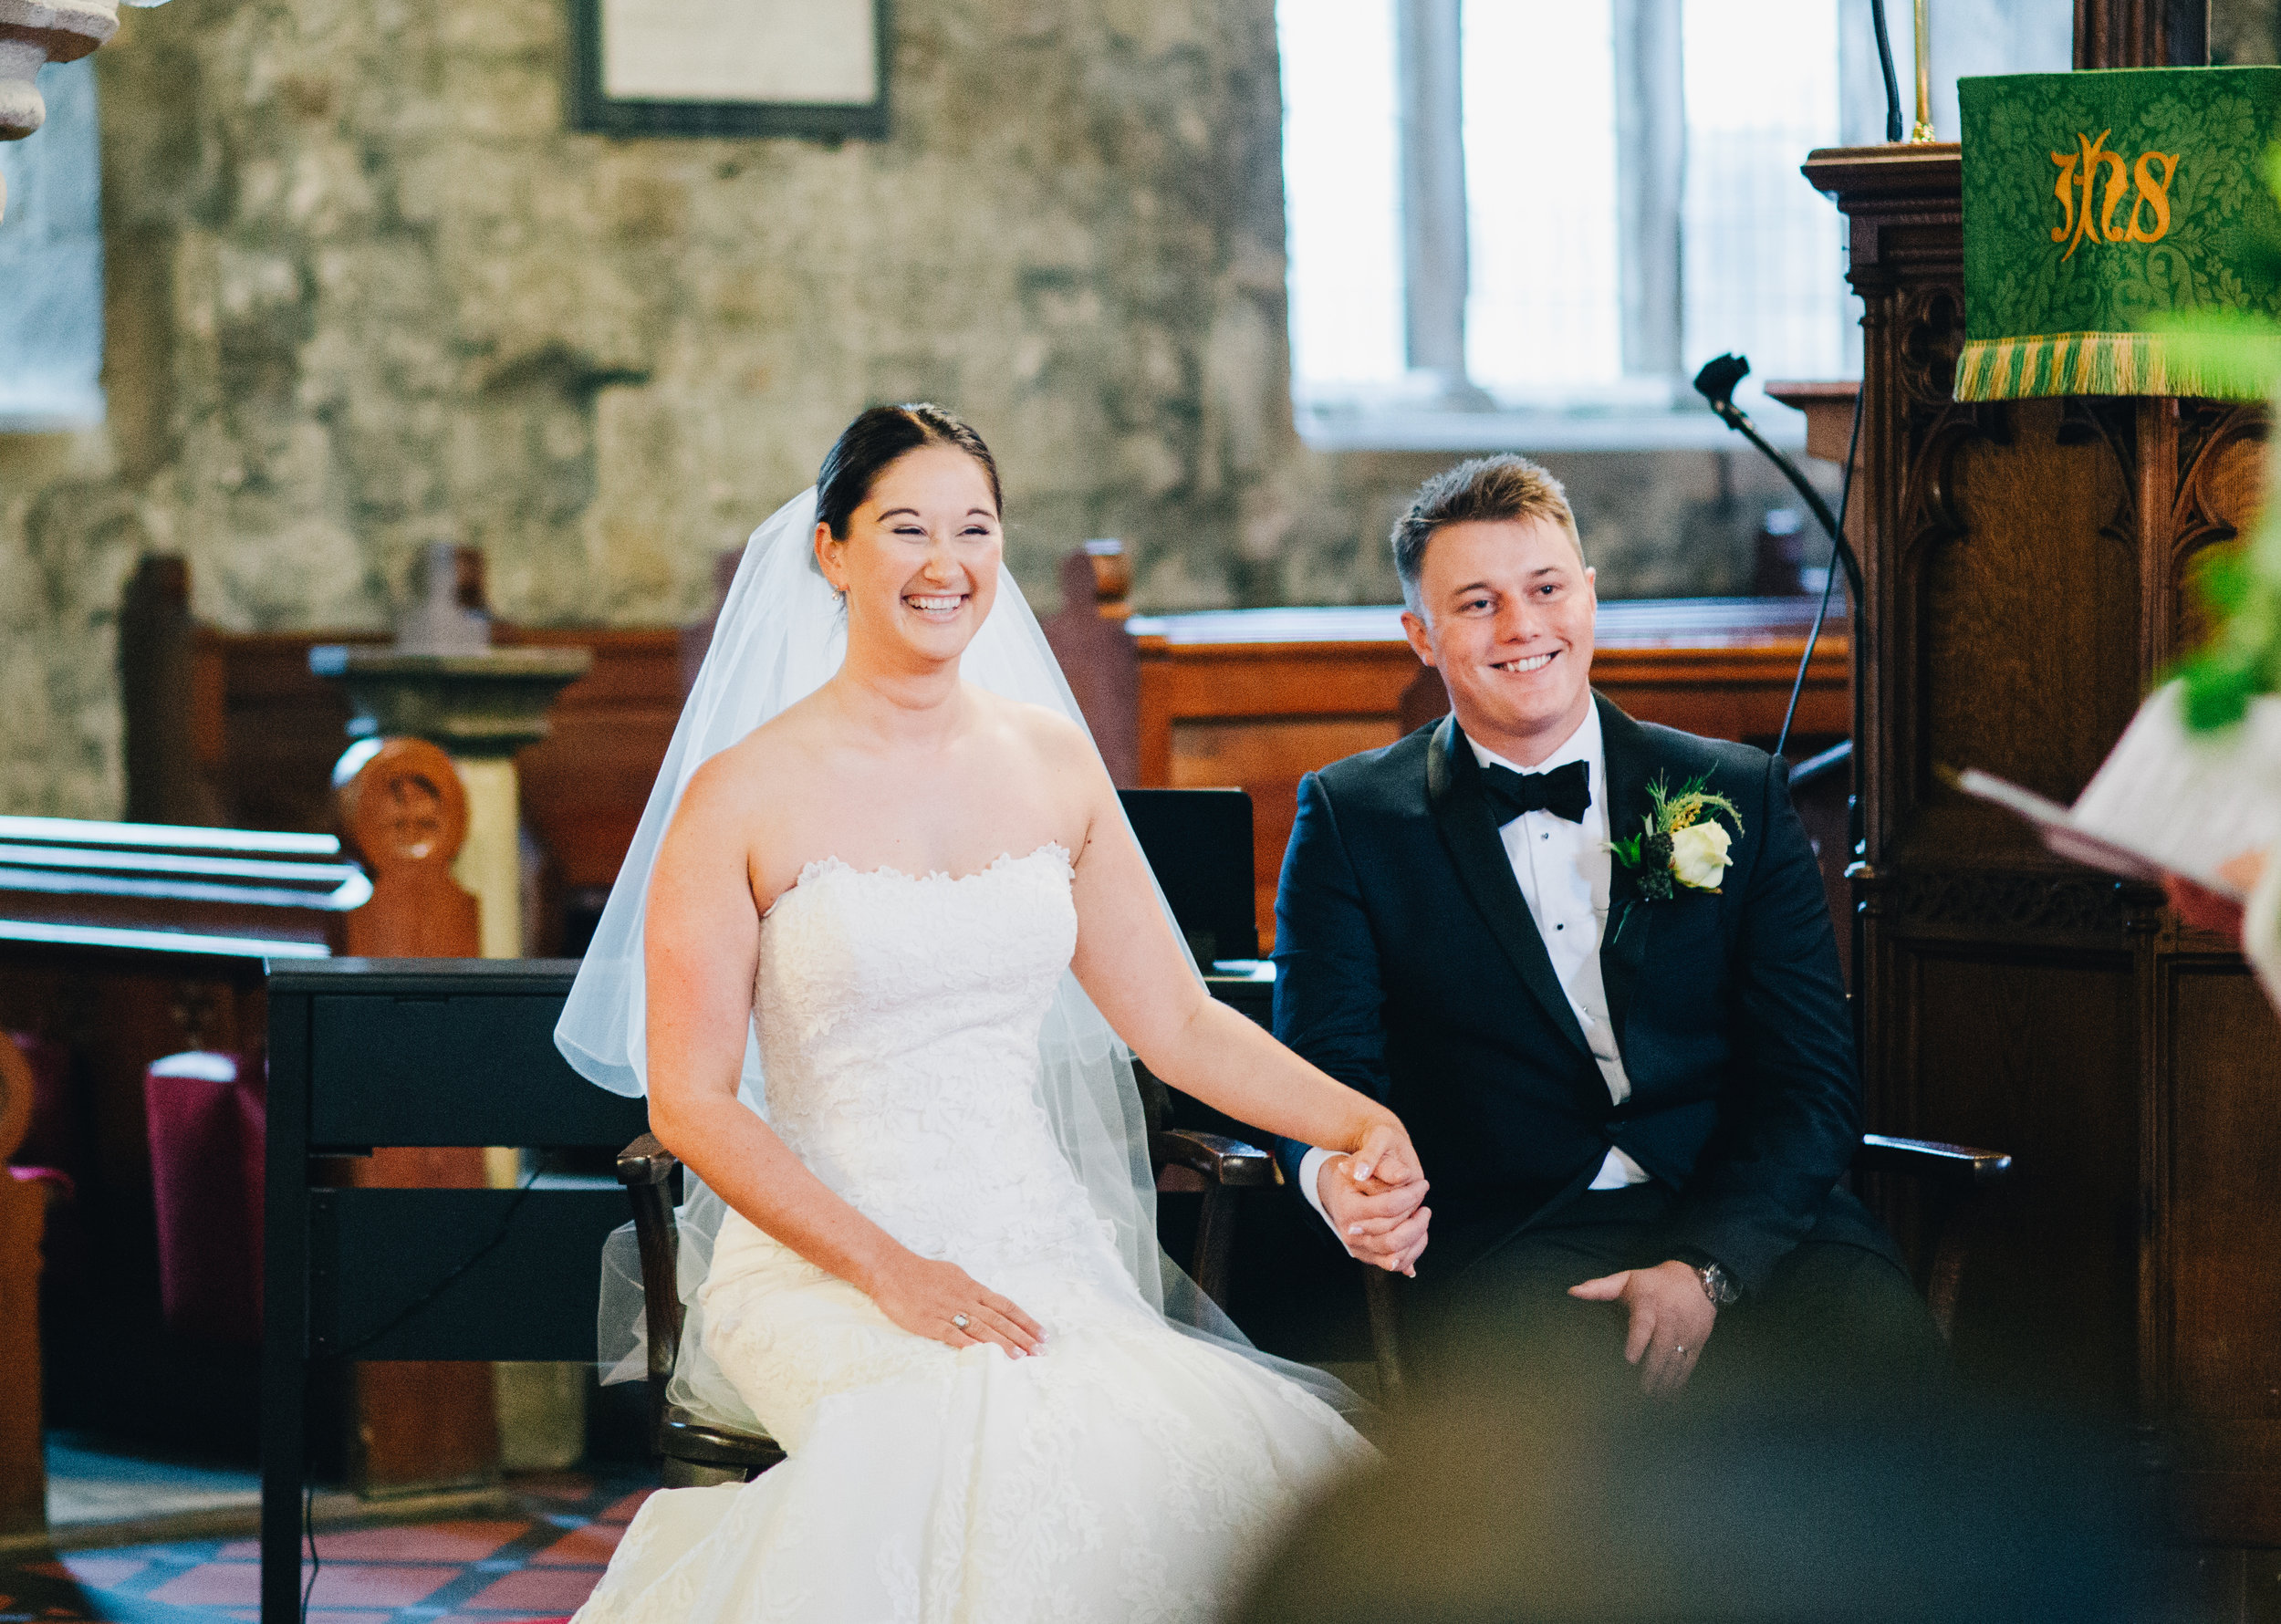 Ribble Valley wedding photographer - bride and groom at wedding ceremony